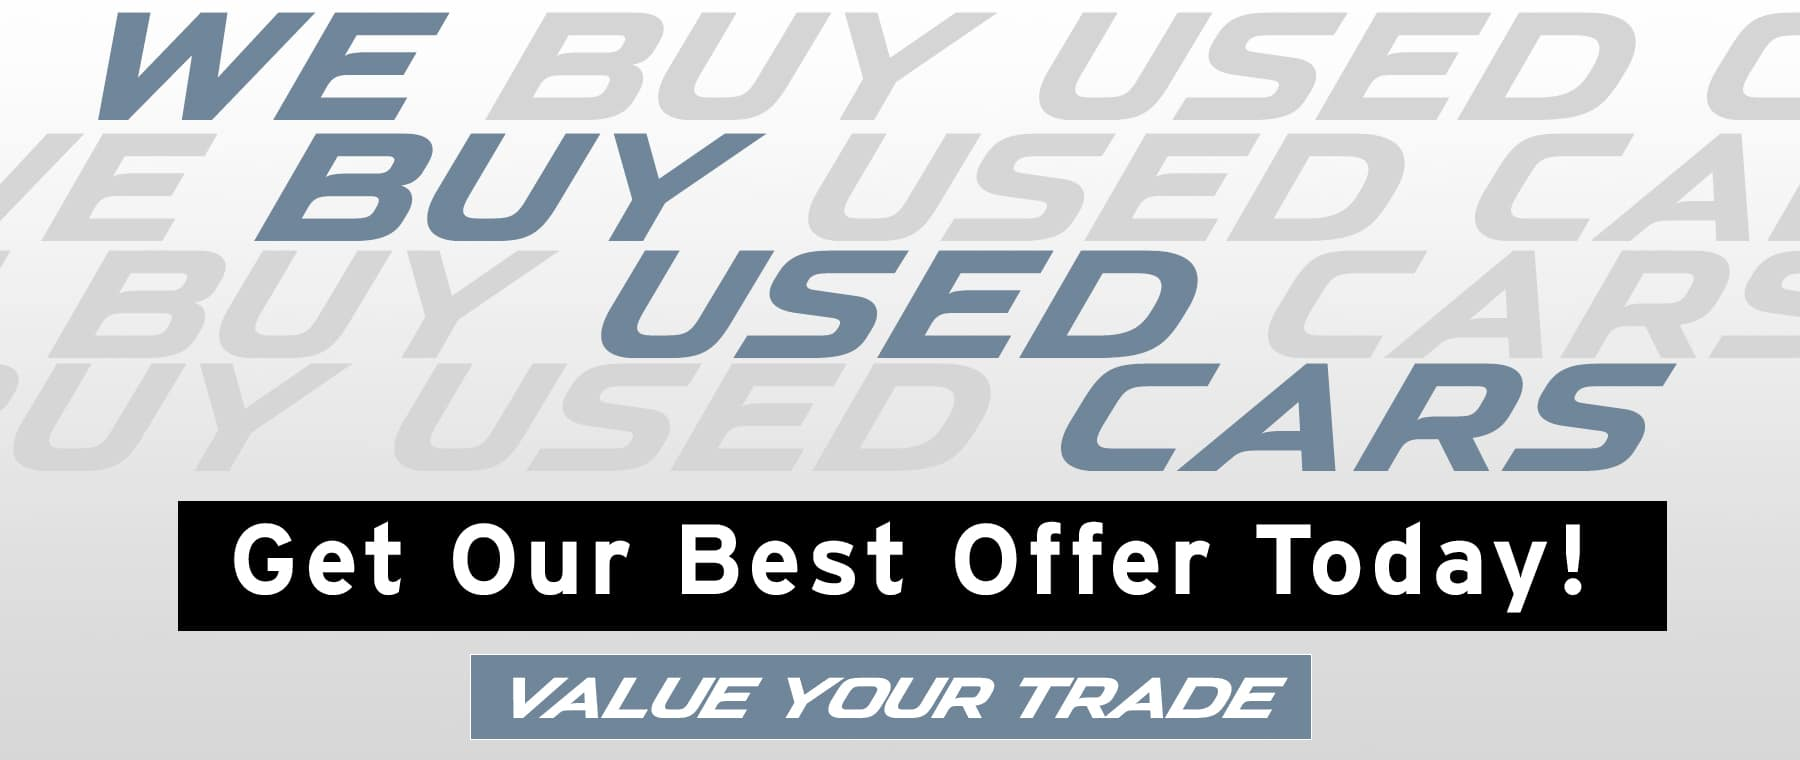 We Buy Used Cars | Get Our Best Offer Today!